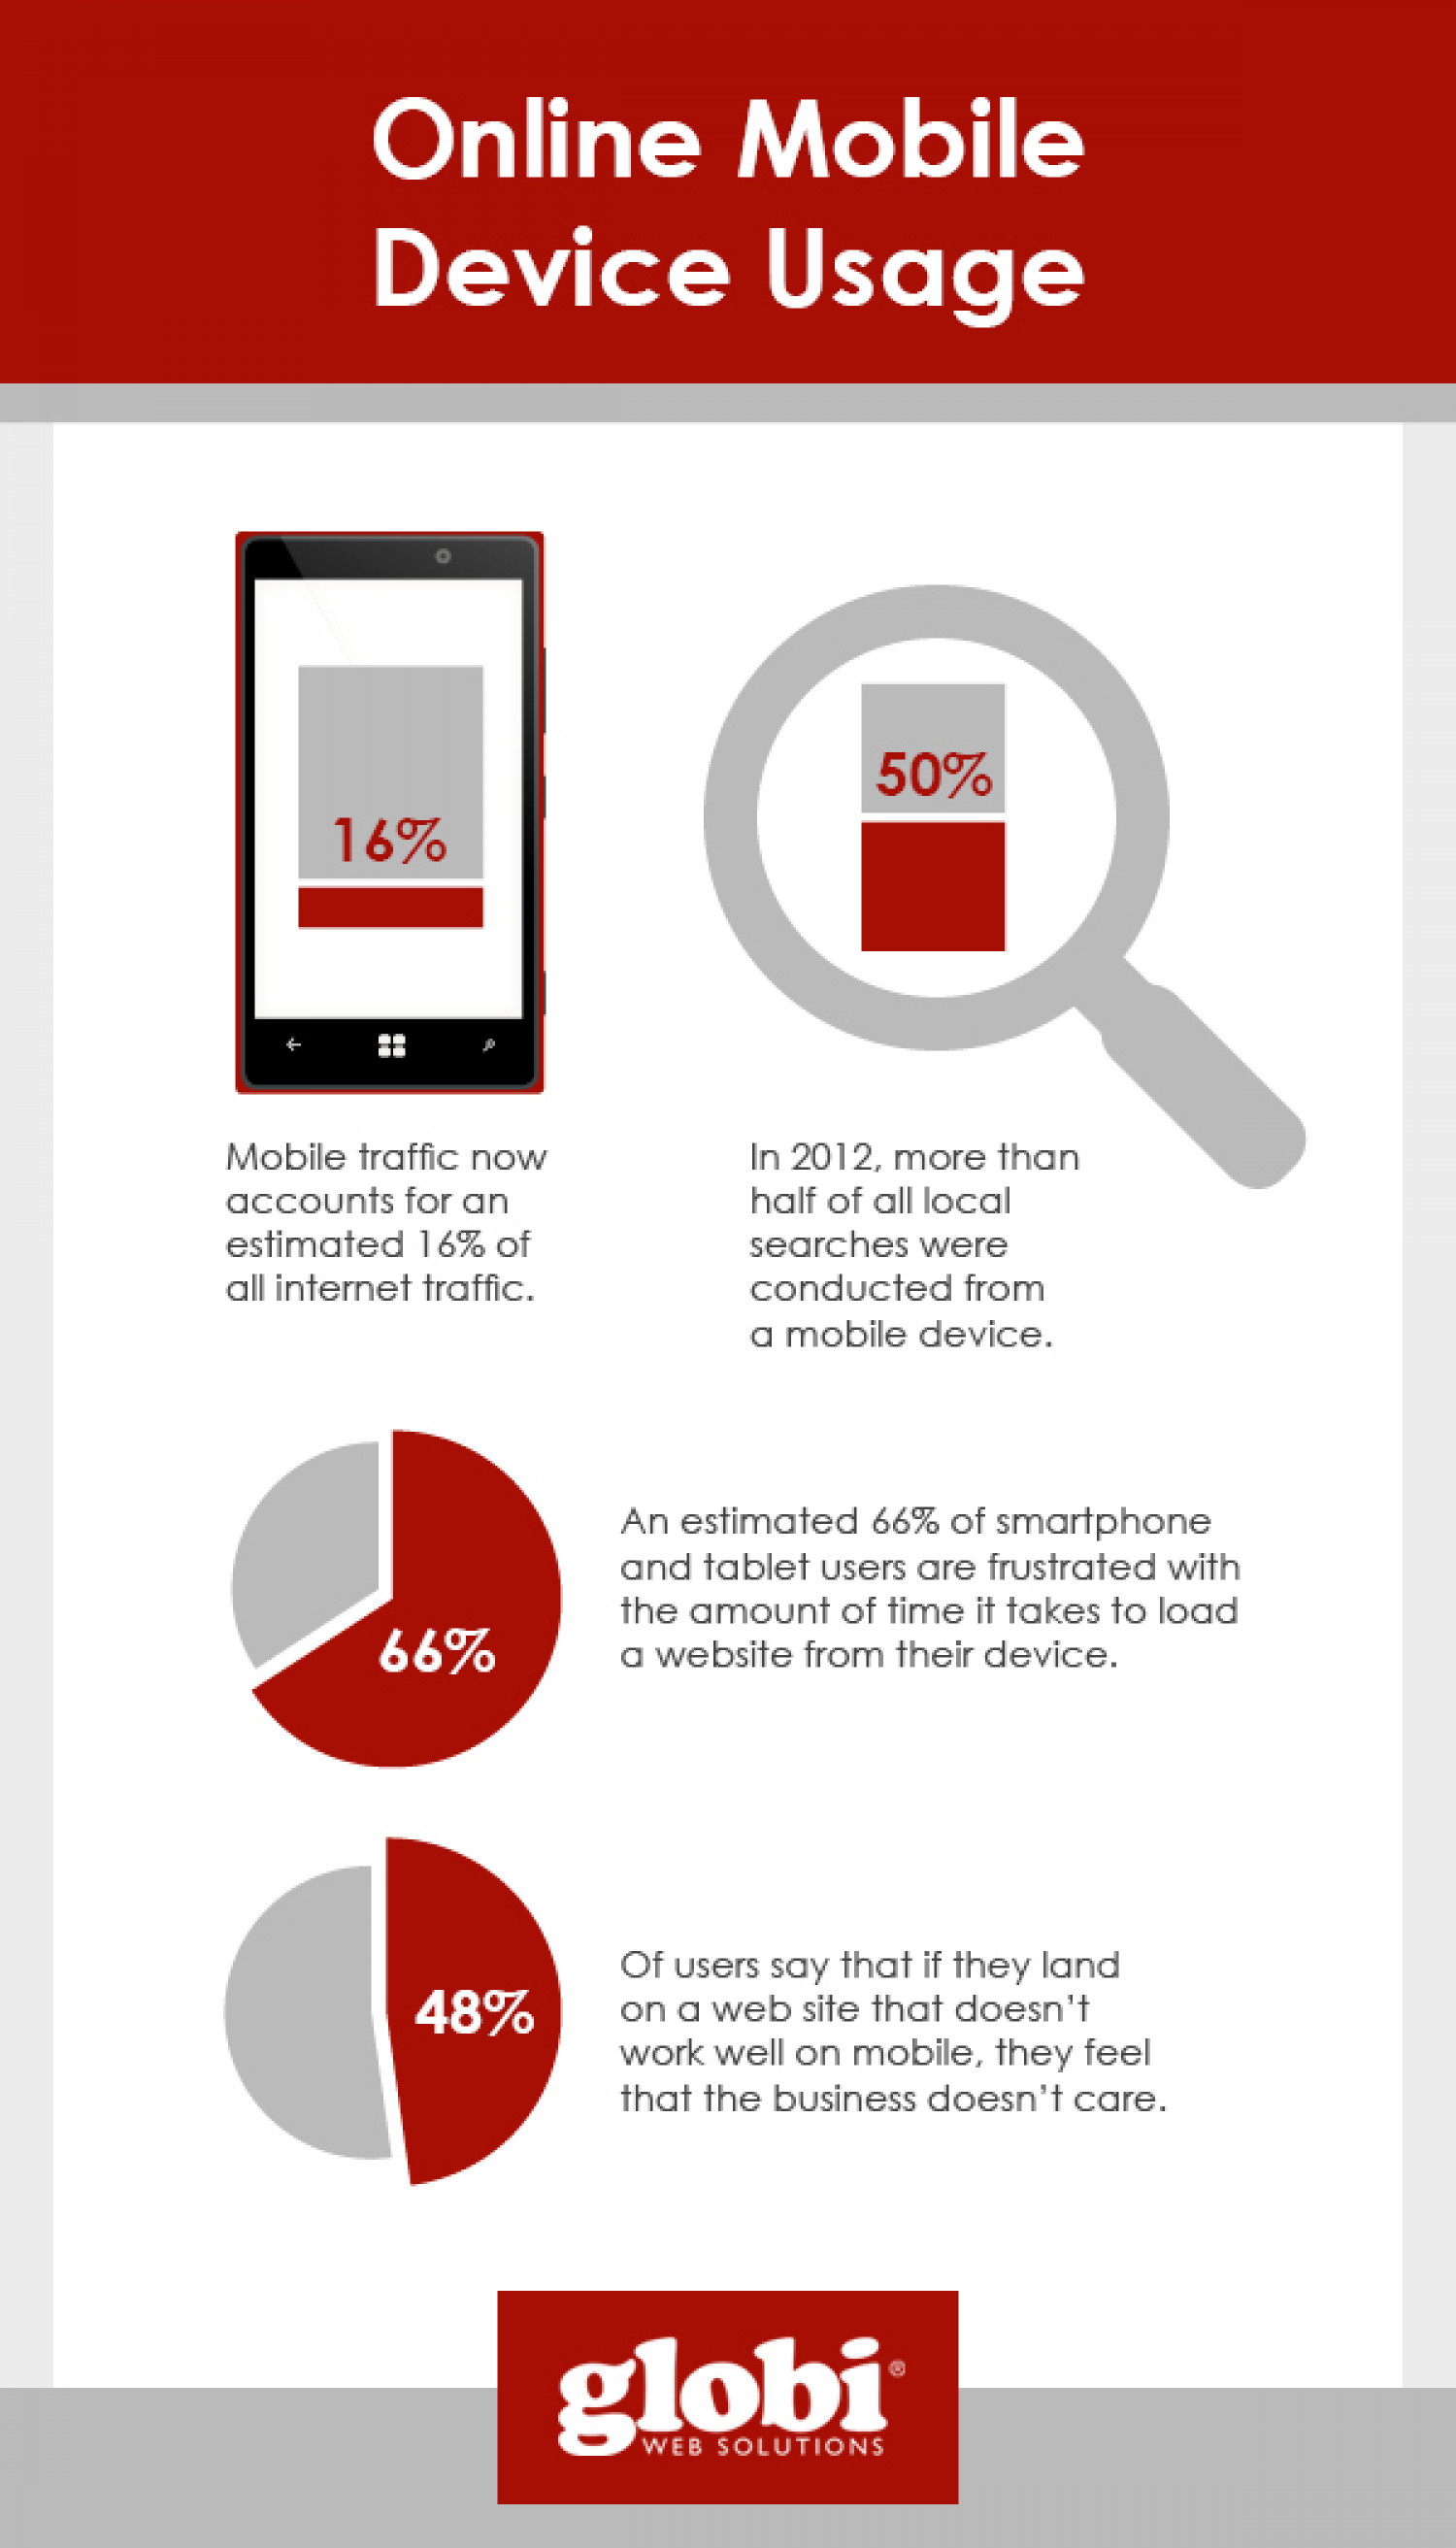 Online Mobile Device Usage Infographic